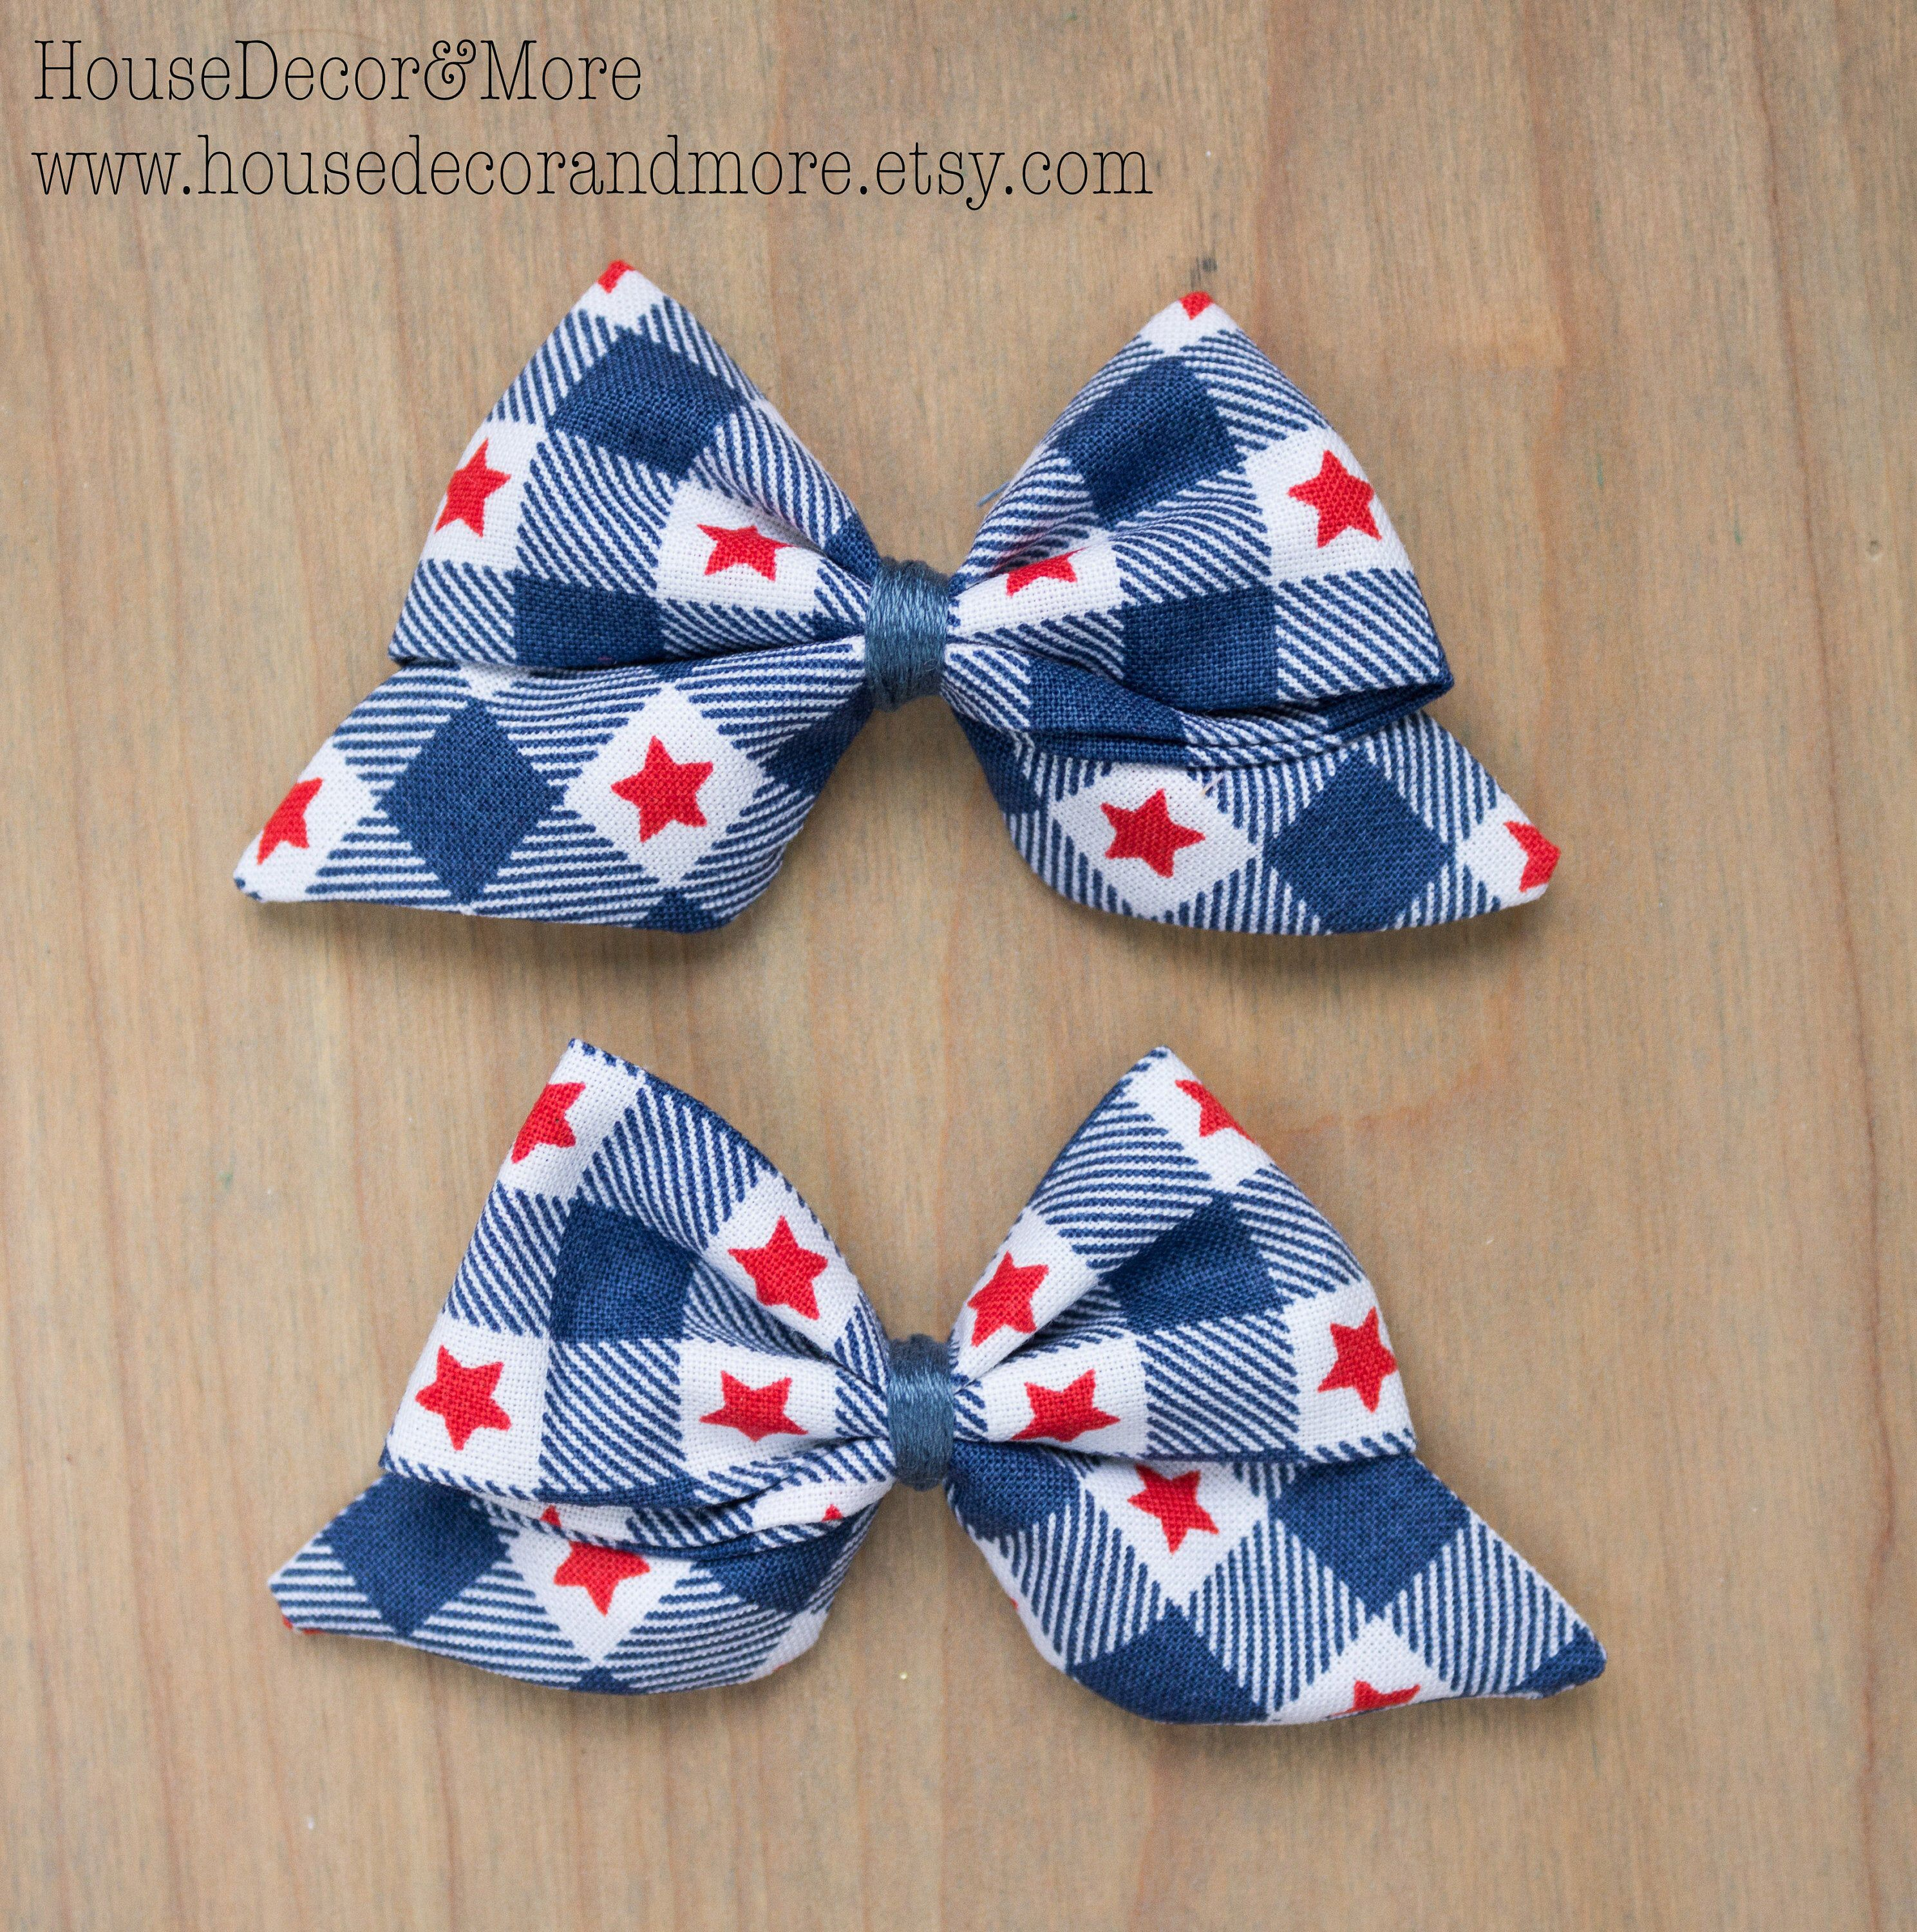 Patriotic Gingham Fabric Hair Bows - Girls Red white and blue Fabric Hair Bow - Americana Buffalo Check Fabric Hair Bow - Birthday Hair Bows